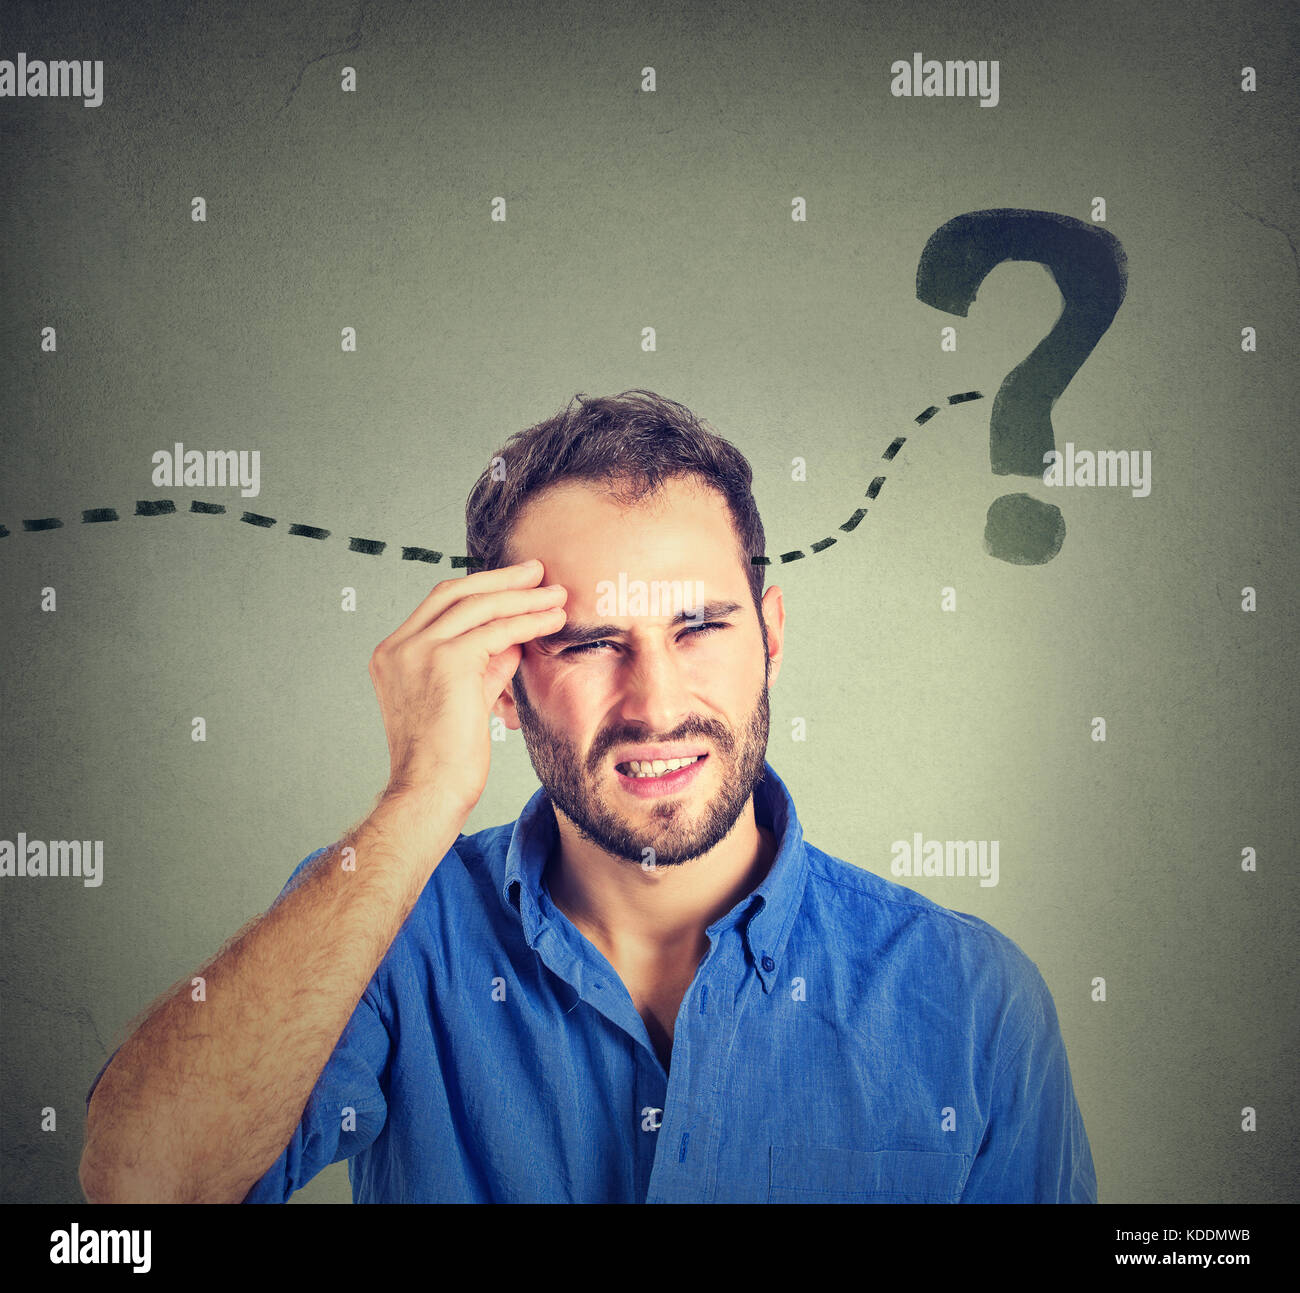 man thinking looking for a solution - Stock Image